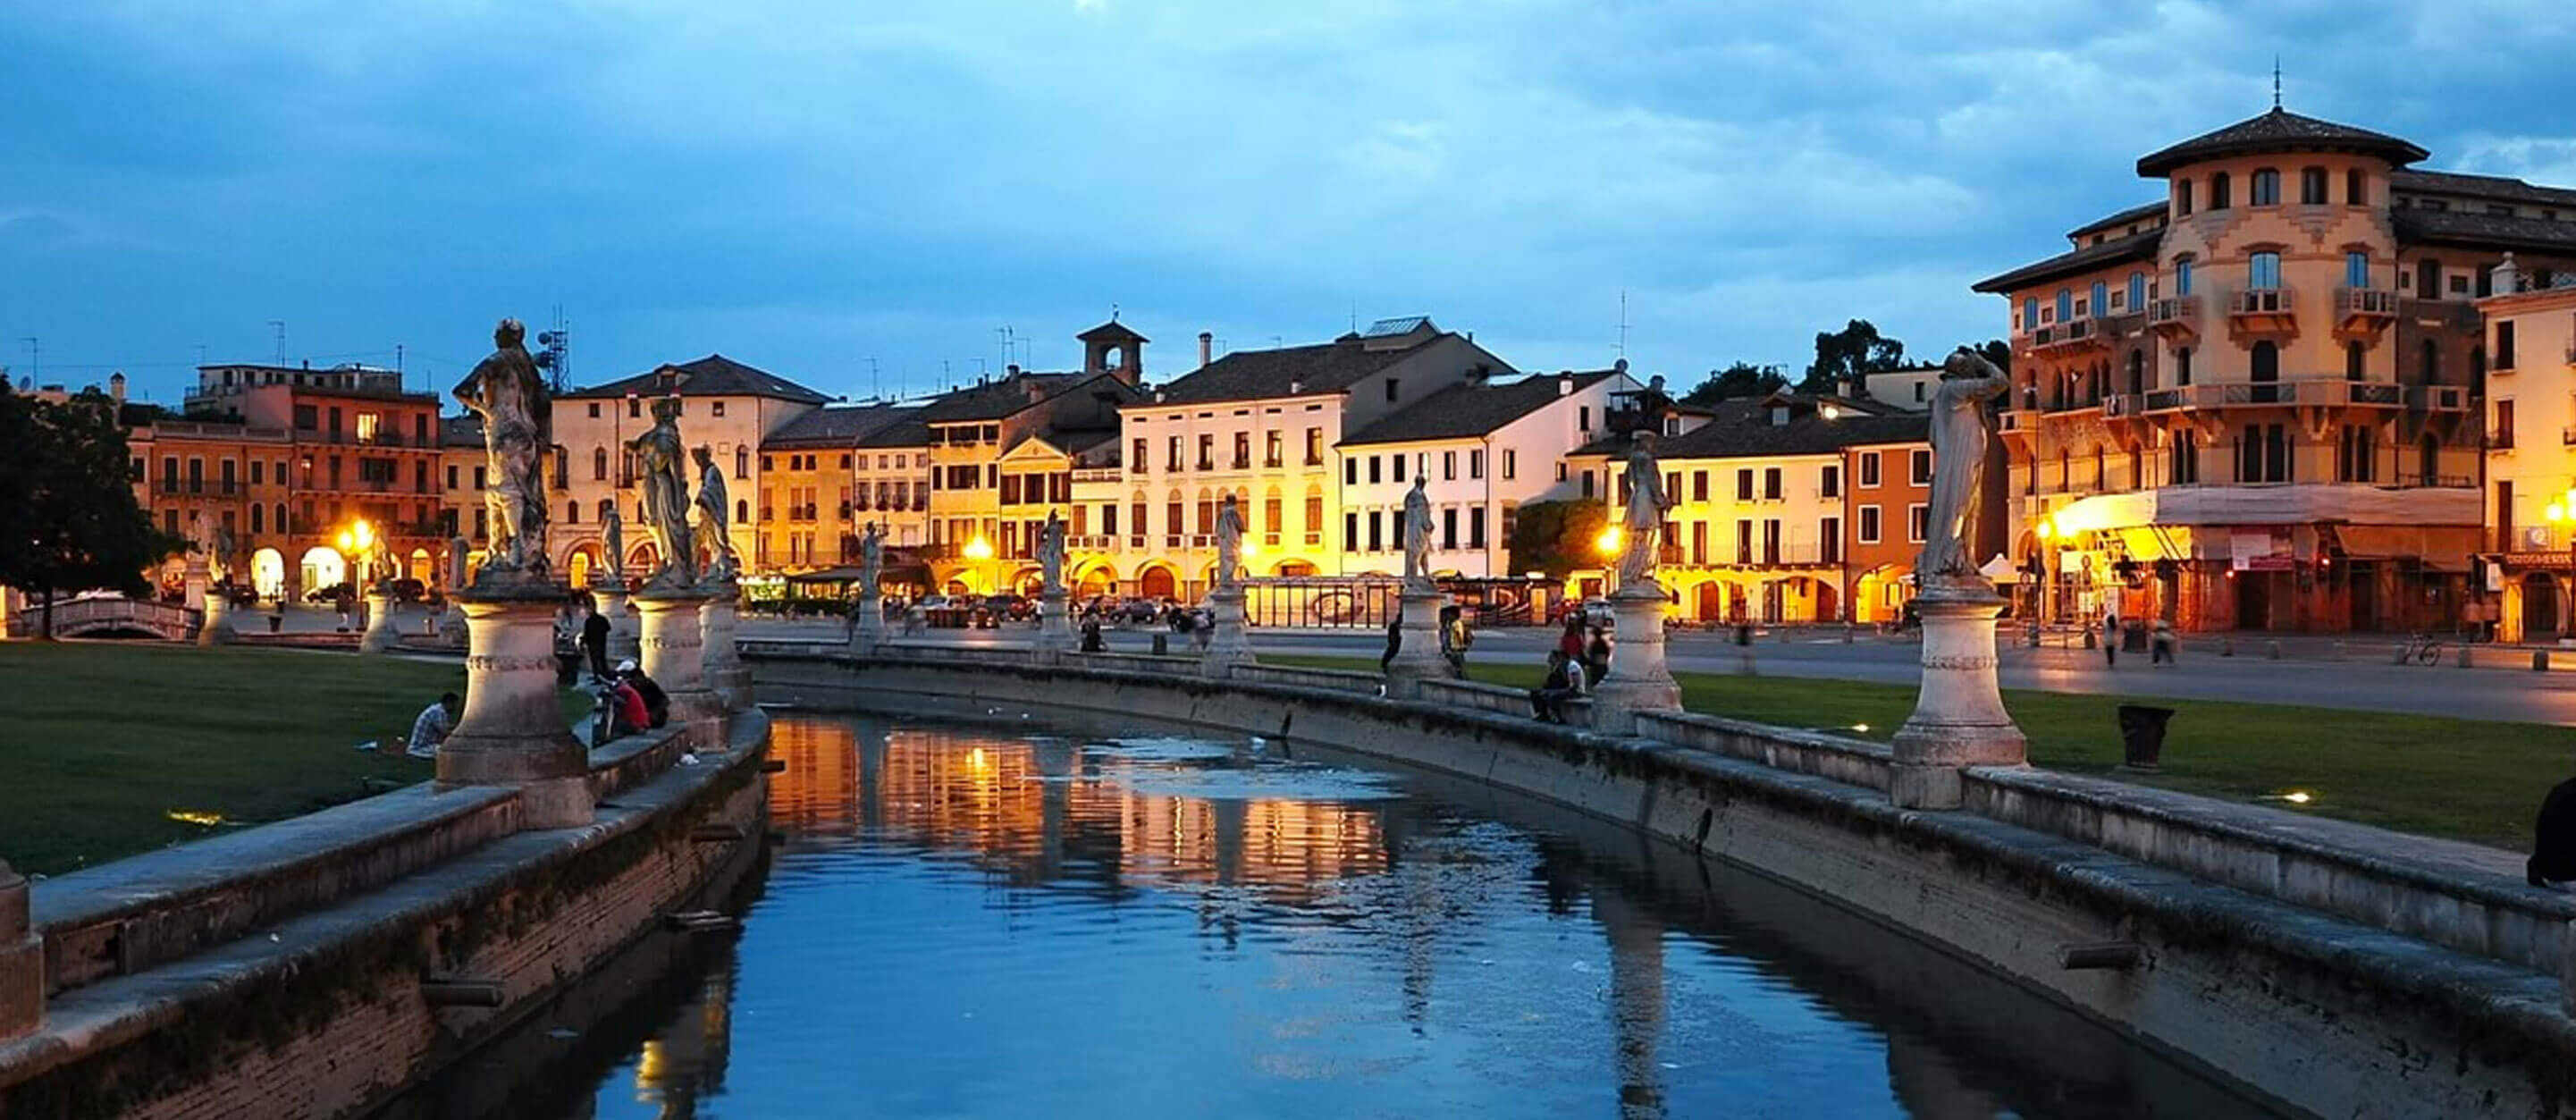 10 things to see in padova